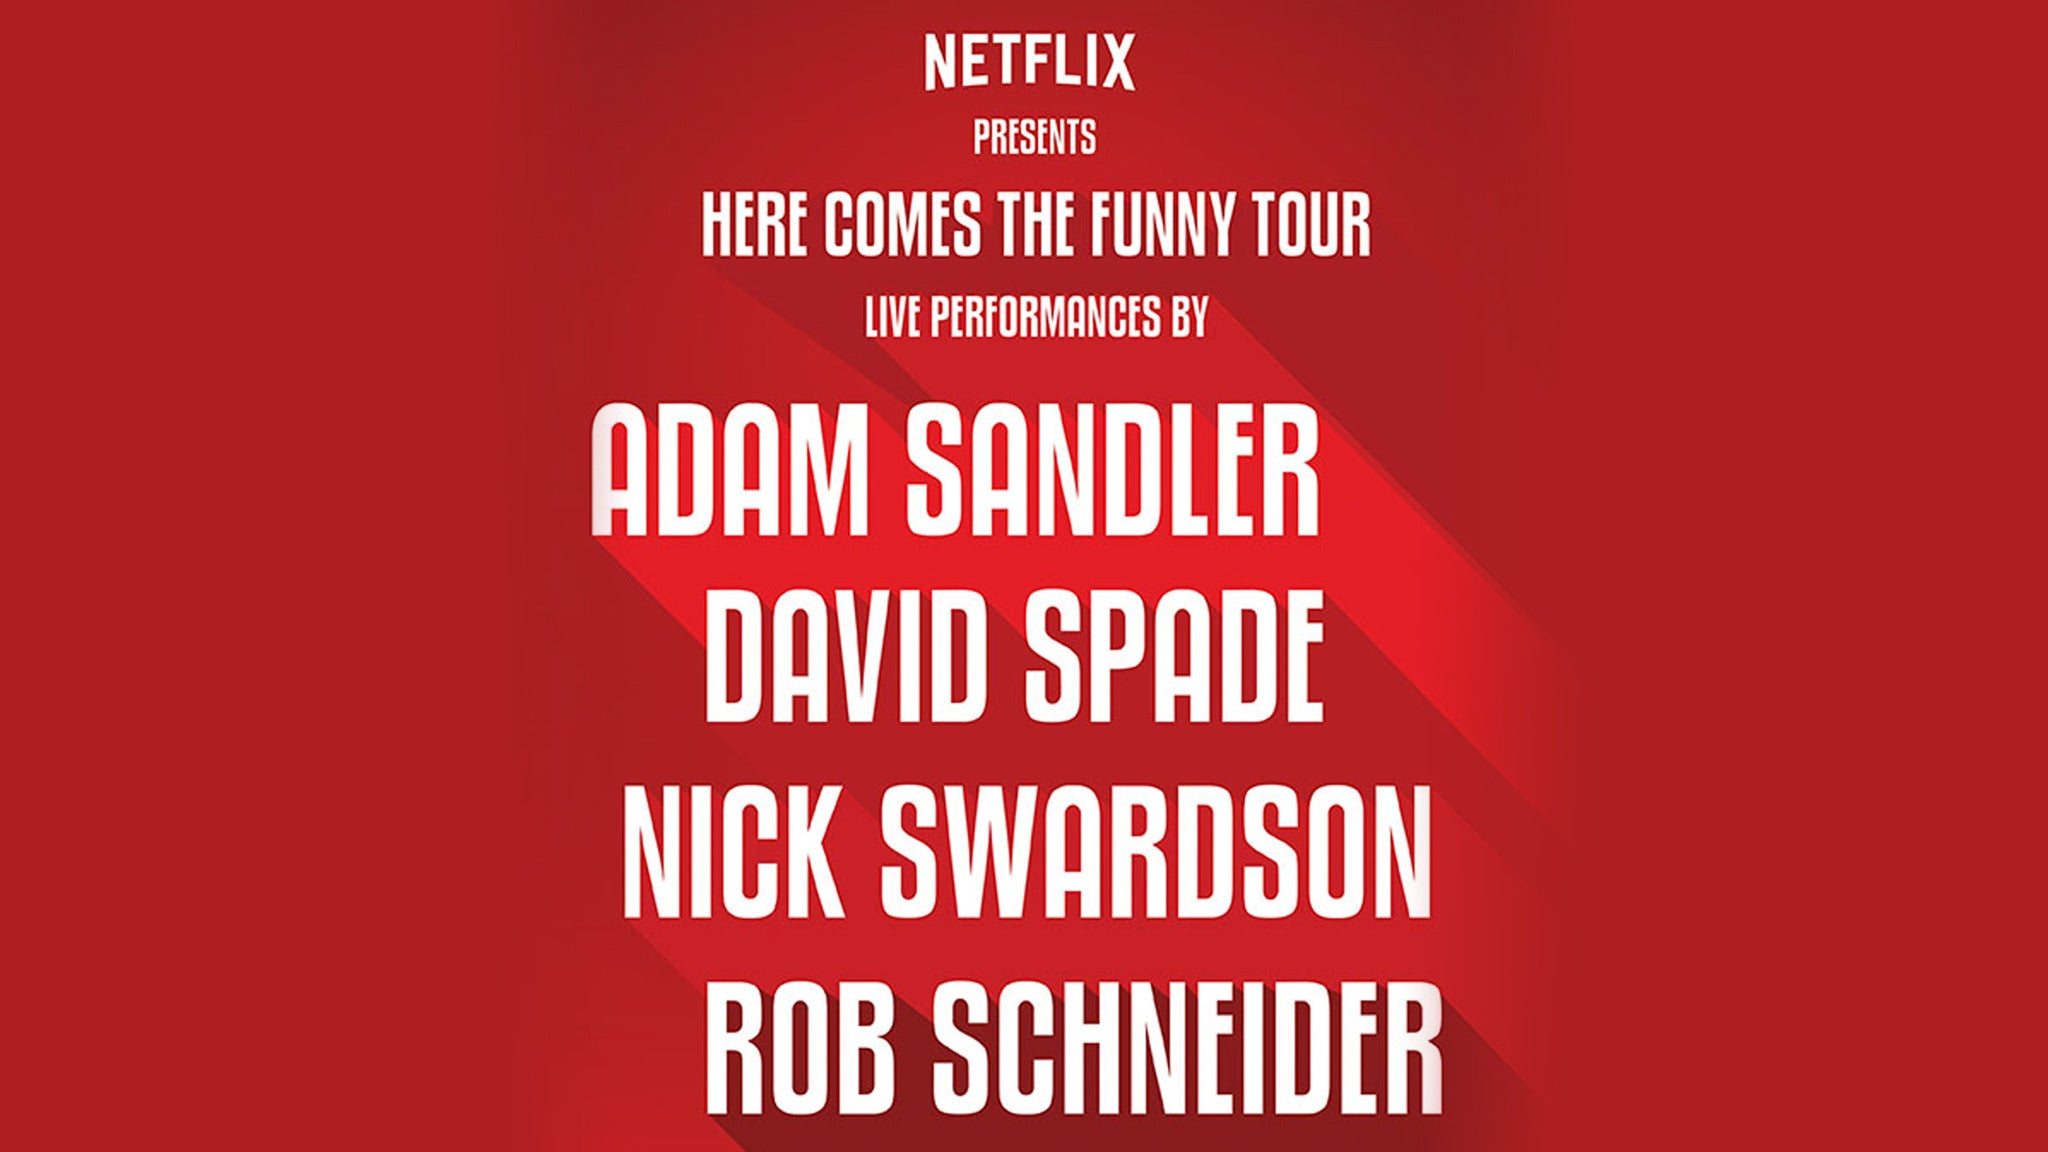 Netflix Presents: Here Comes the Funny Tour